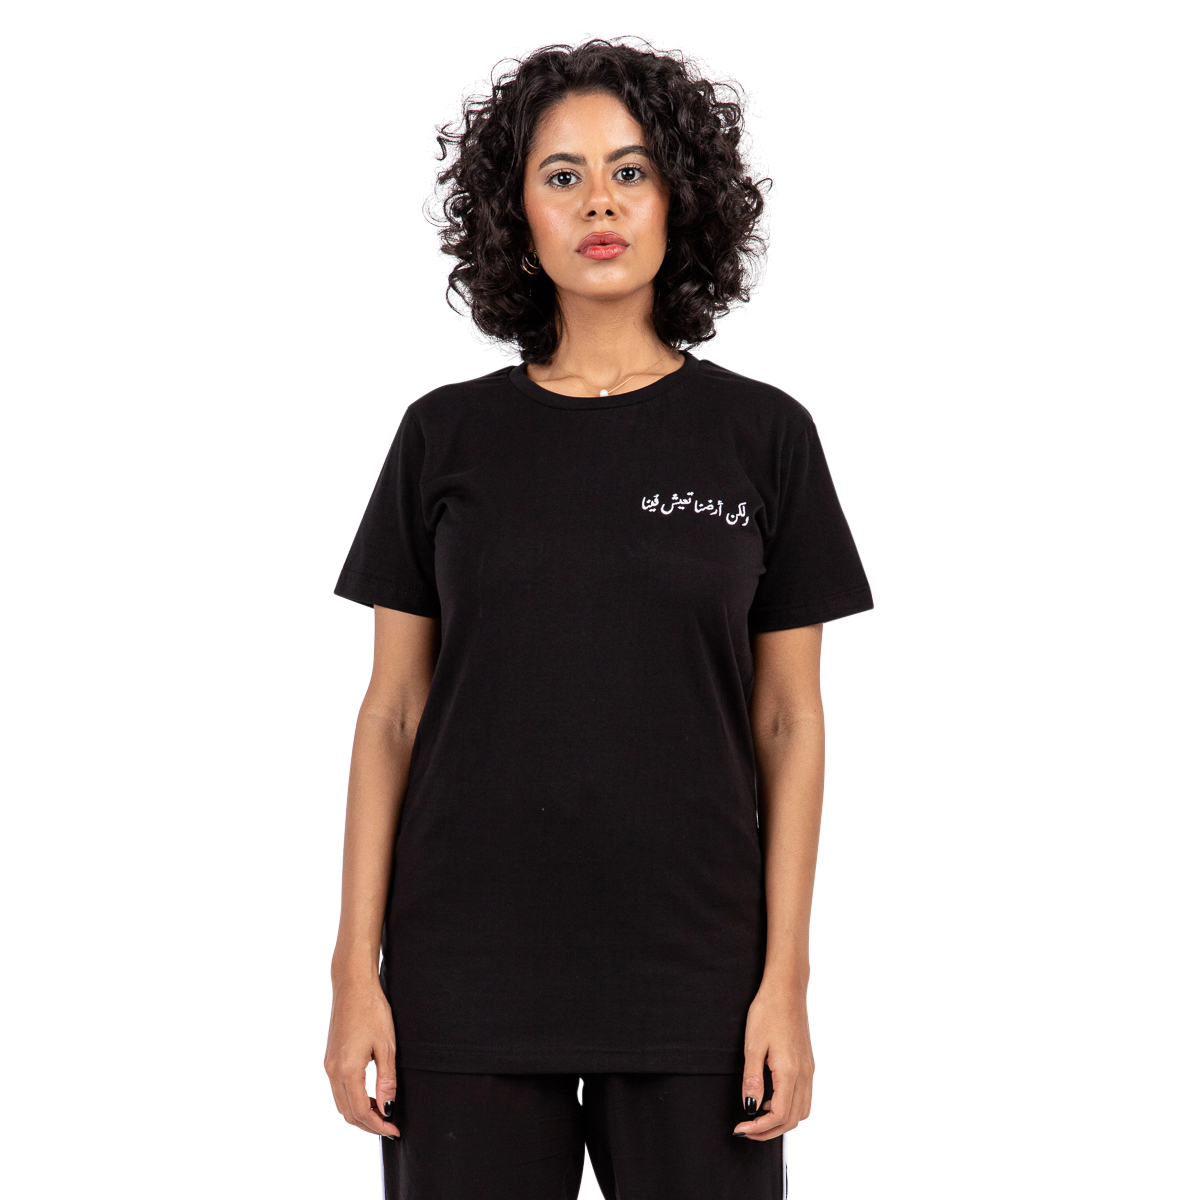 Our land lives within t-shirt // women